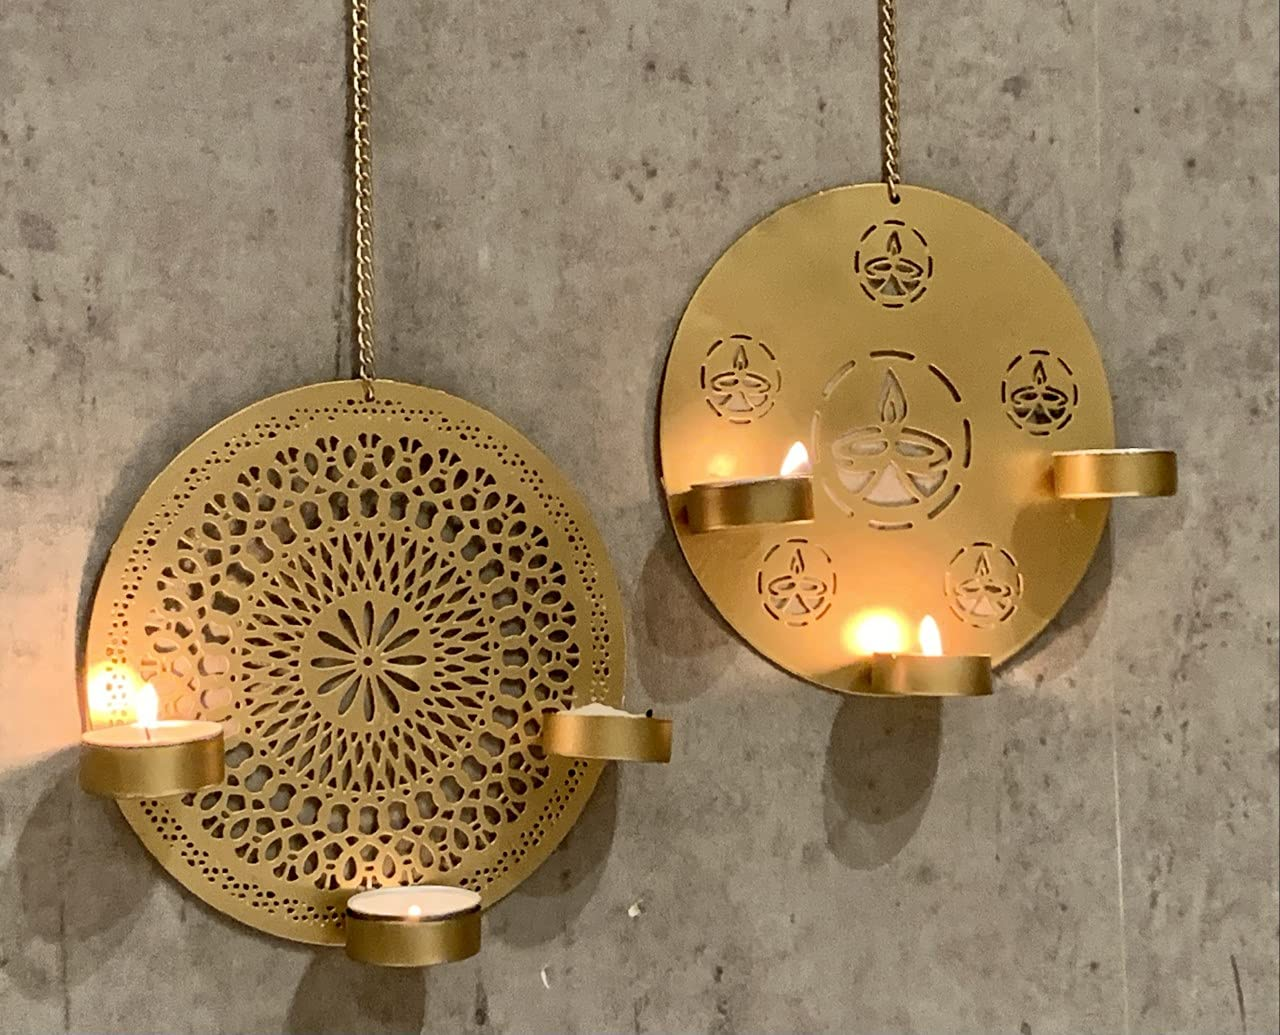 Urban Born Gold Set of 2 Candles for Home Decoration and Diwali Decoration and Tea Light Holders for Home Decor Hanging | Candle Stand for Home Decoration *Free Tealights*